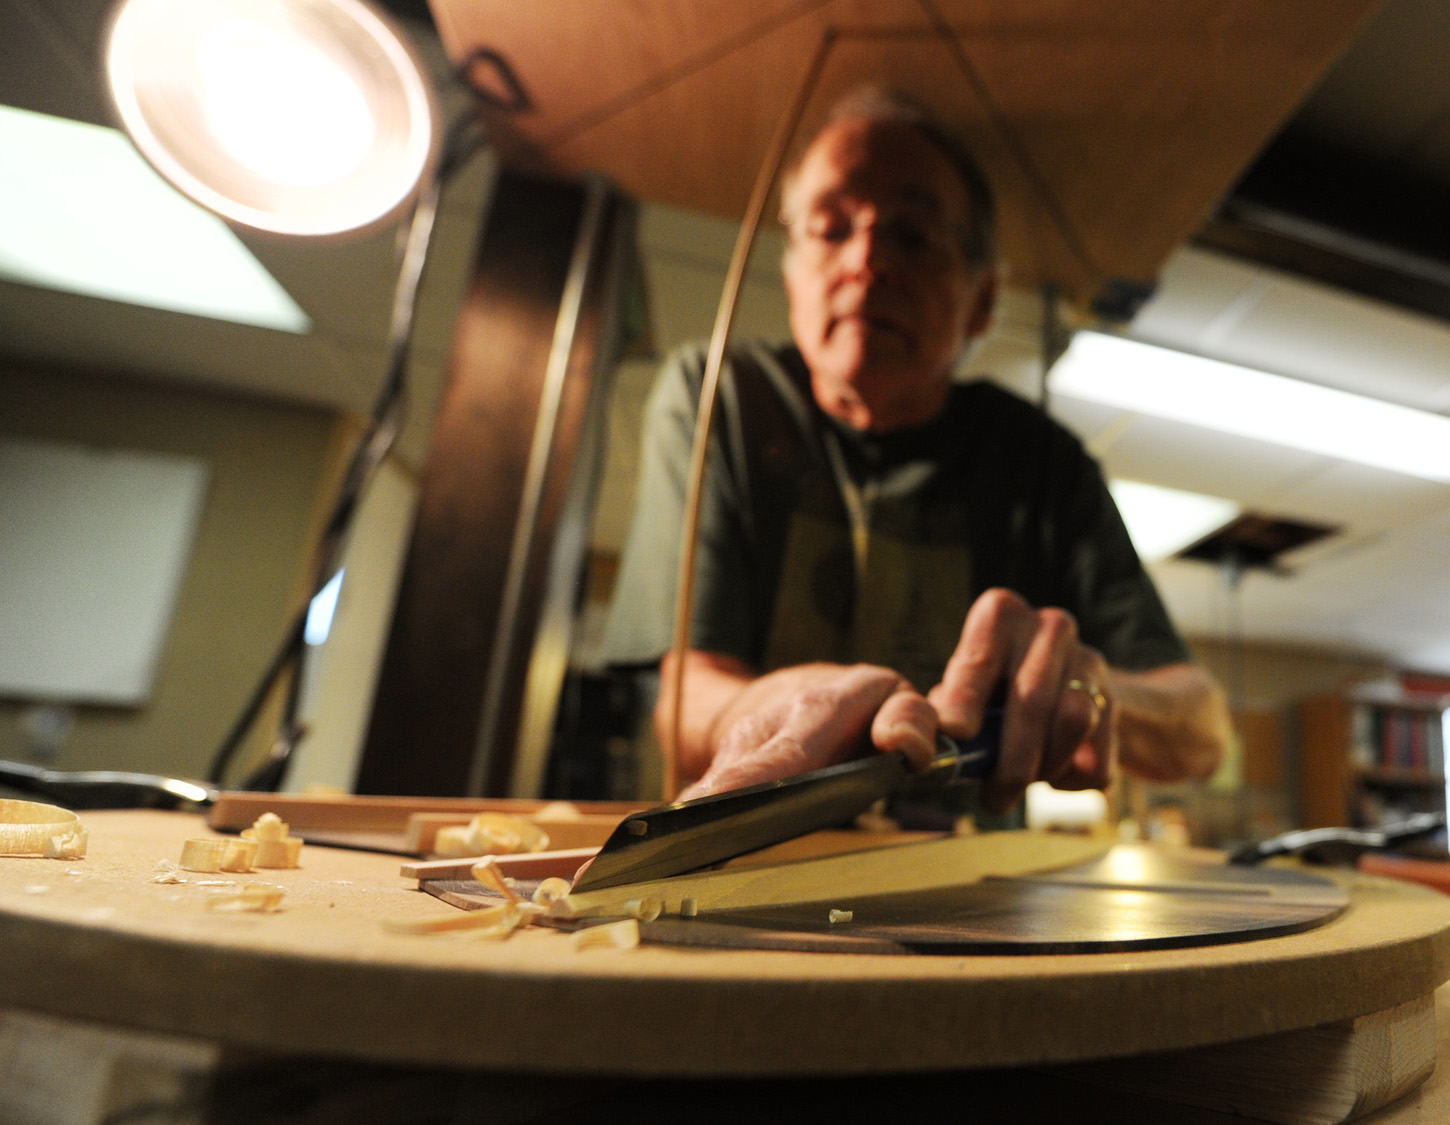 David MacCubbin's hand-made acoustic guitars